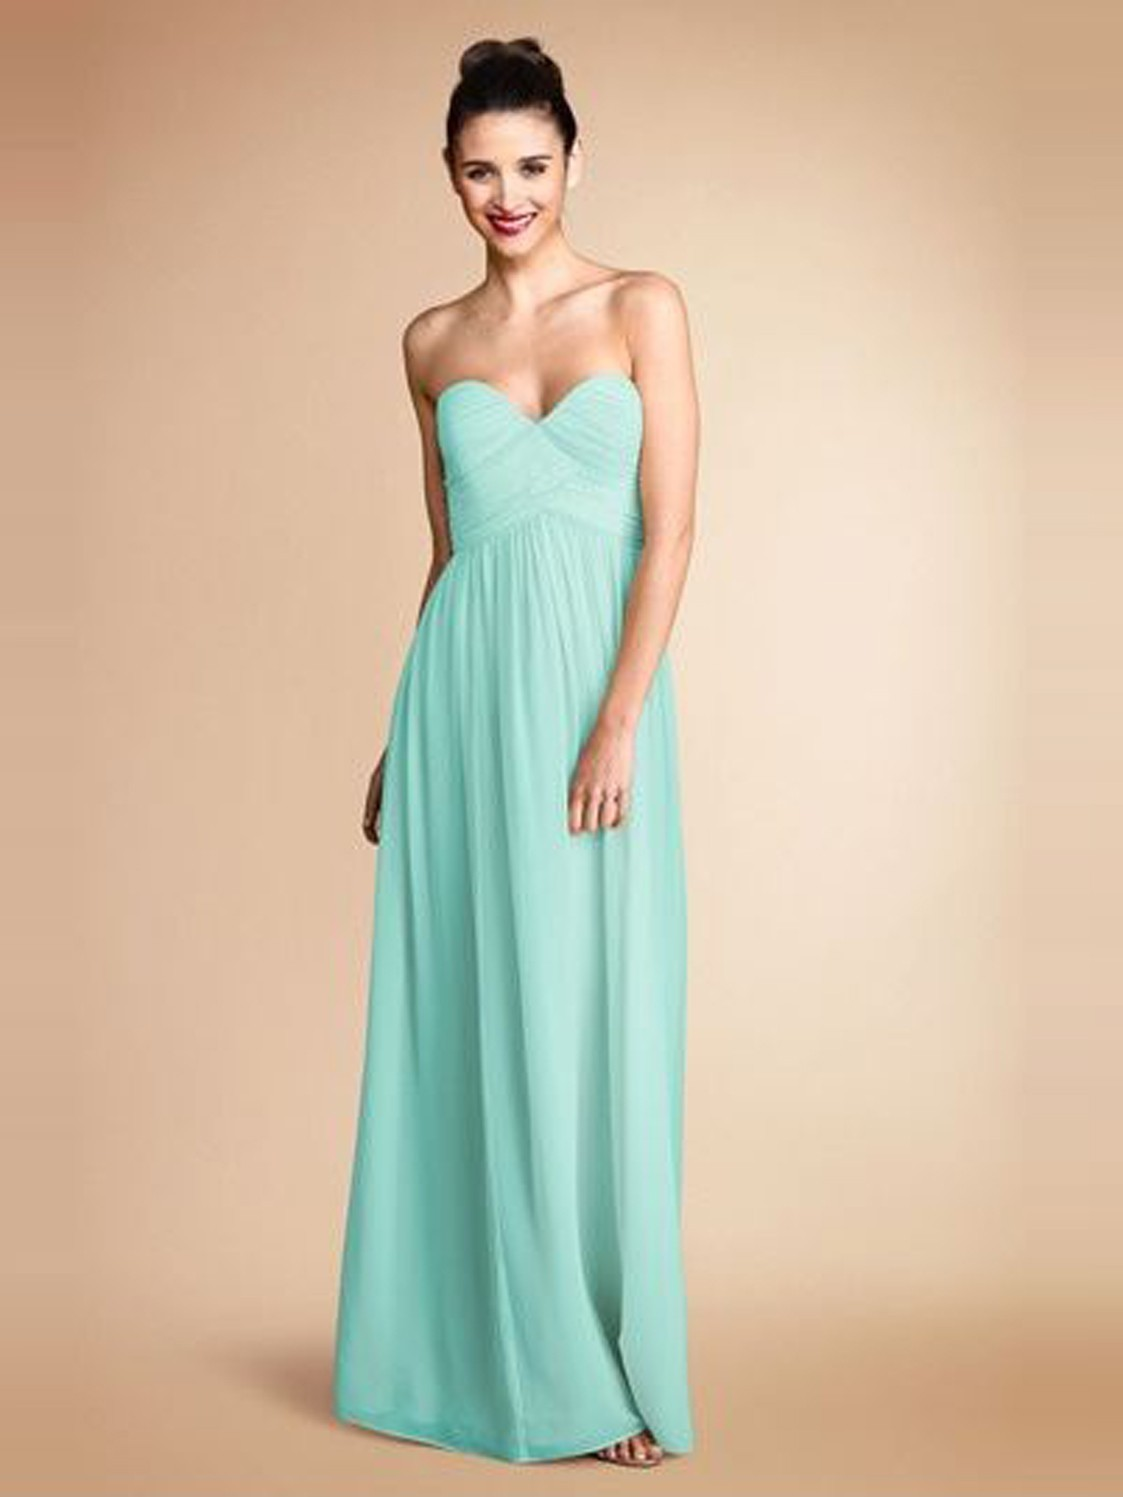 Tips for finding perfect chiffon bridesmaid dresses 24 dressi tips for finding perfect chiffon bridesmaid dresses ombrellifo Image collections